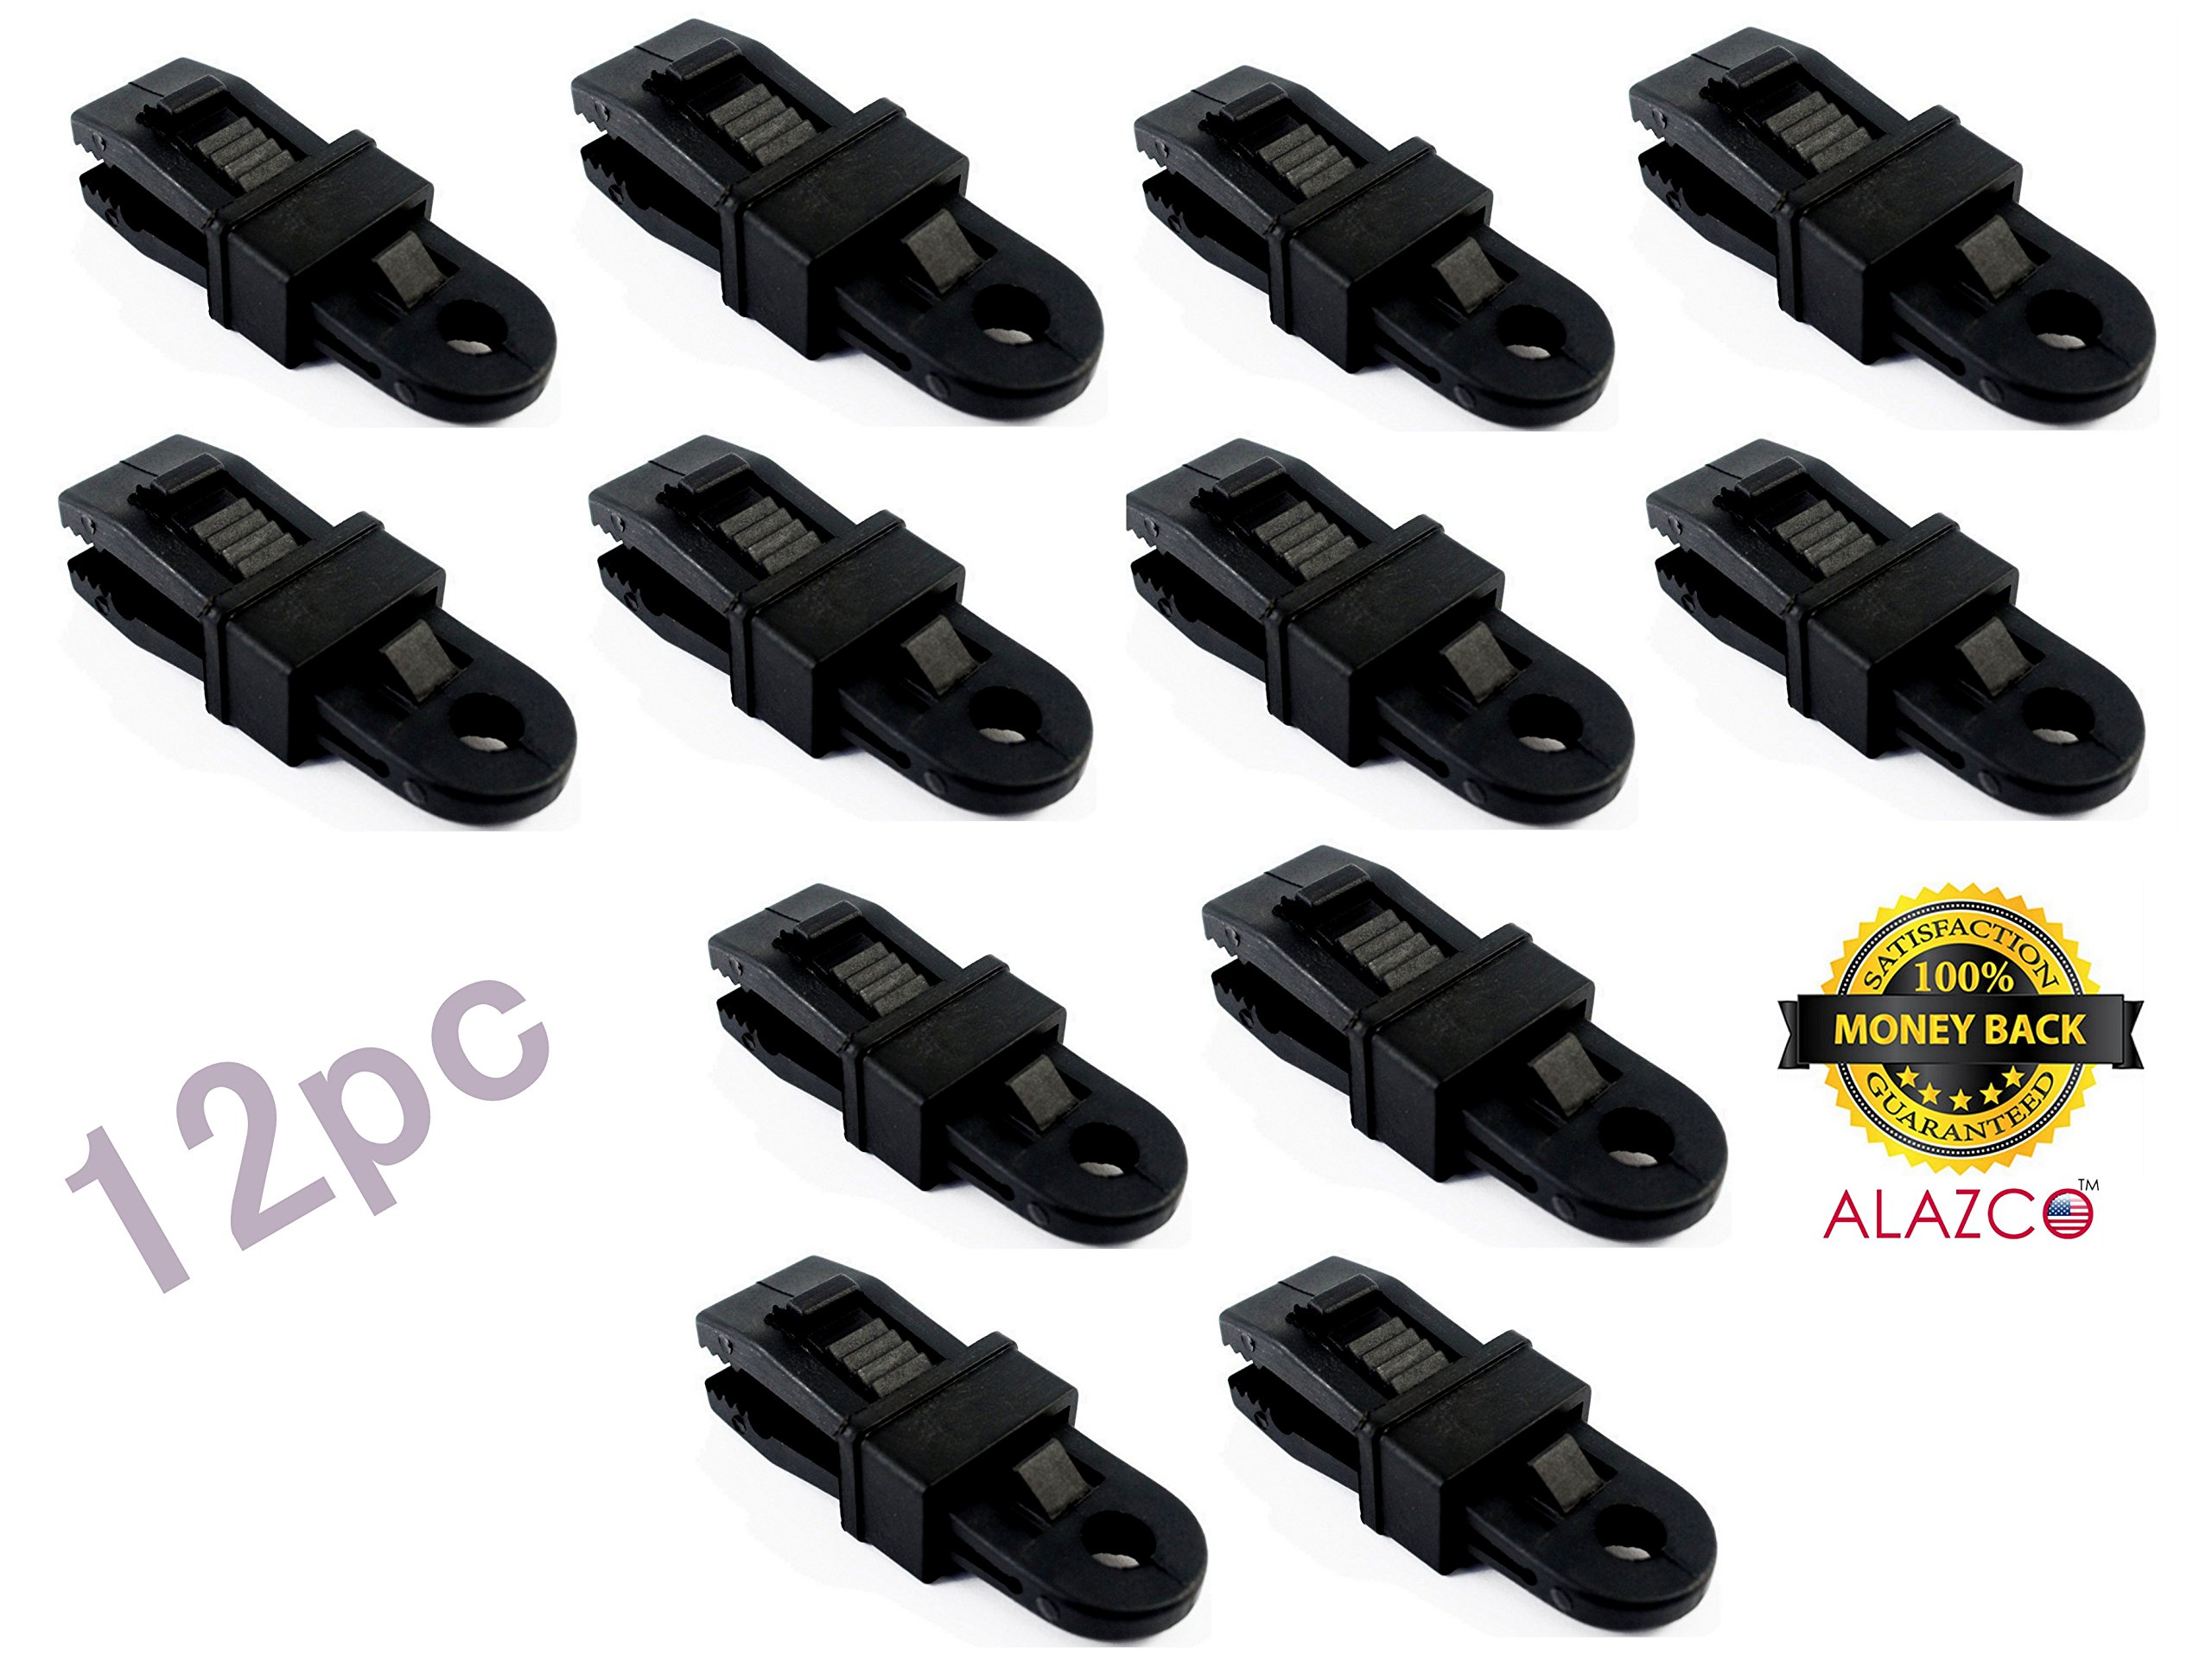 12pc Heavy Duty Clamp Set - 3¼'' Outdoor Camping Tarp Clip - Sliding Secure Lock Grip Awning Clamps